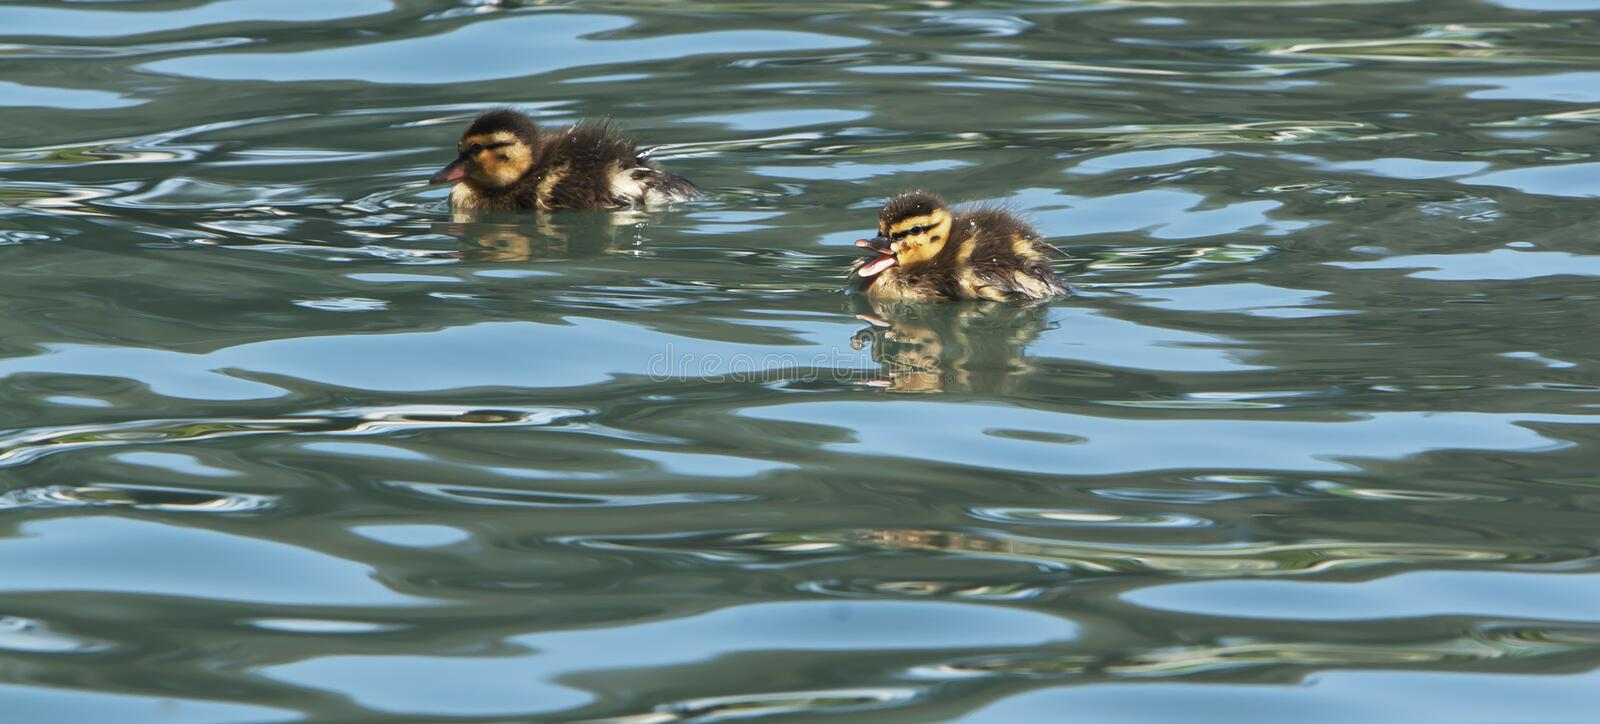 Baby Duck Quacking Swimming. A baby mallard duckling quacking while swimming on rippling pond, second duckling in background royalty free stock photography